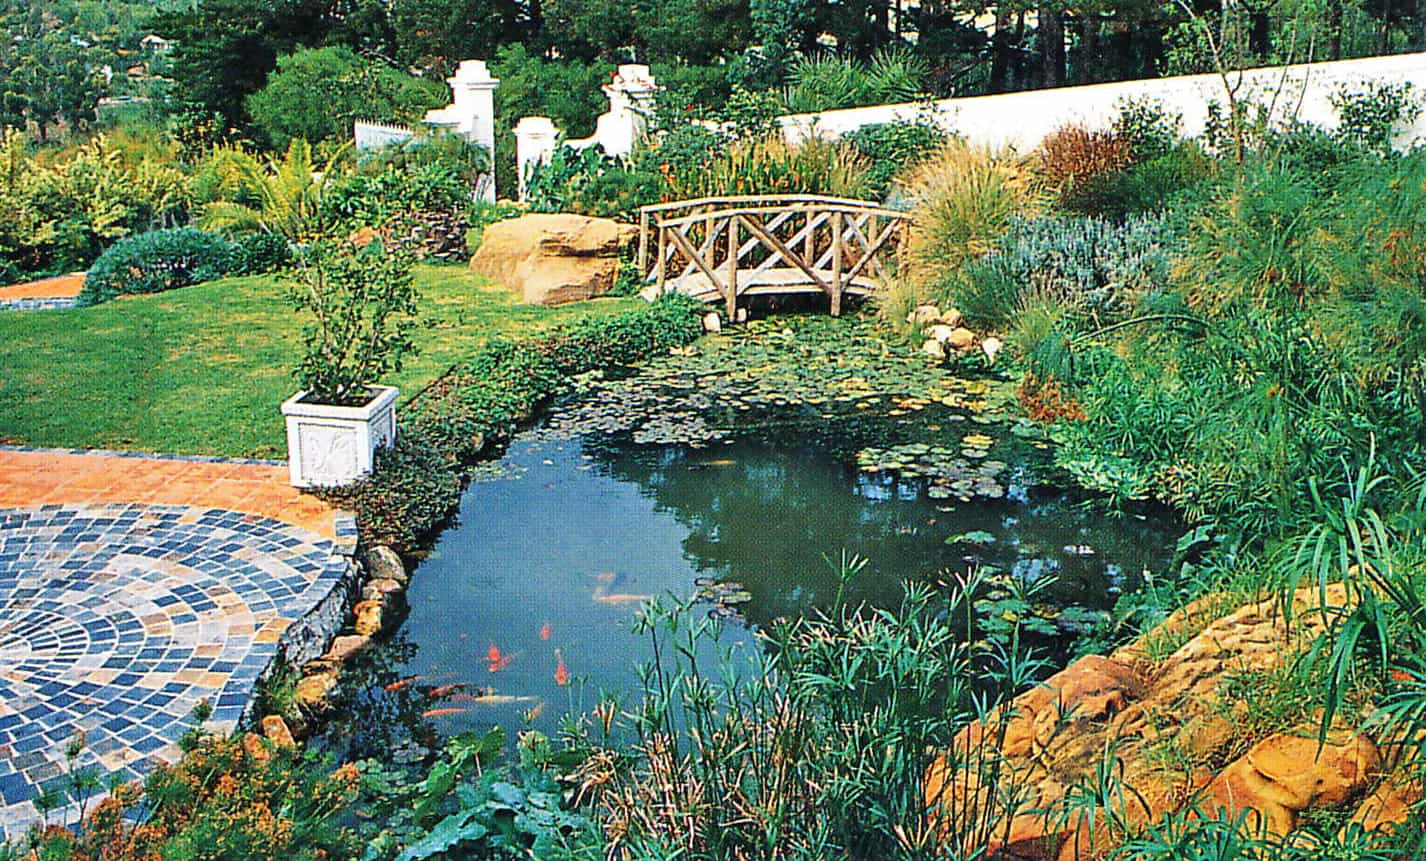 08 Planning Koi Pond - Before You Start